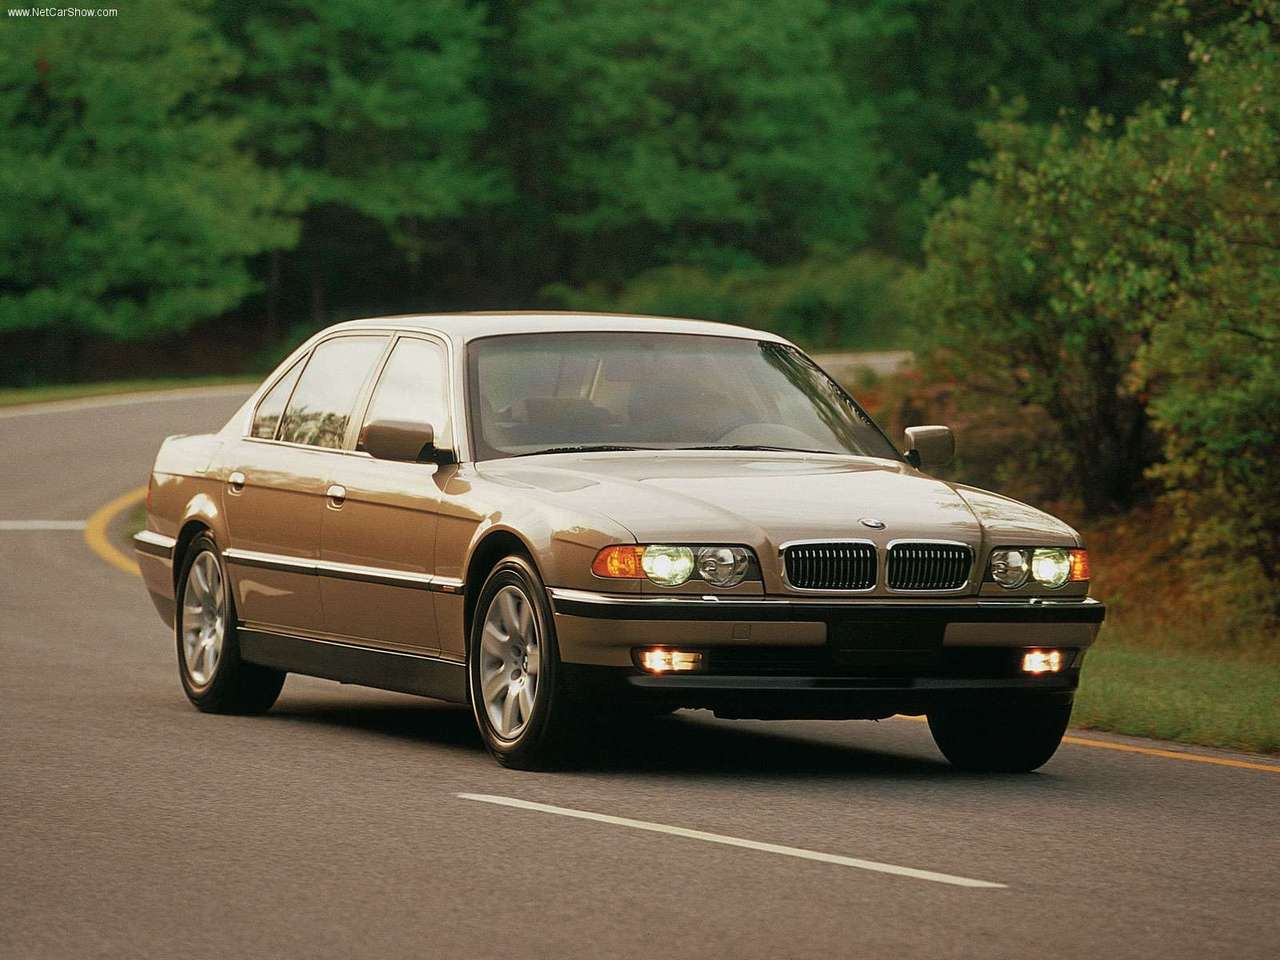 BMW 7 series 725tds 2000 photo - 1